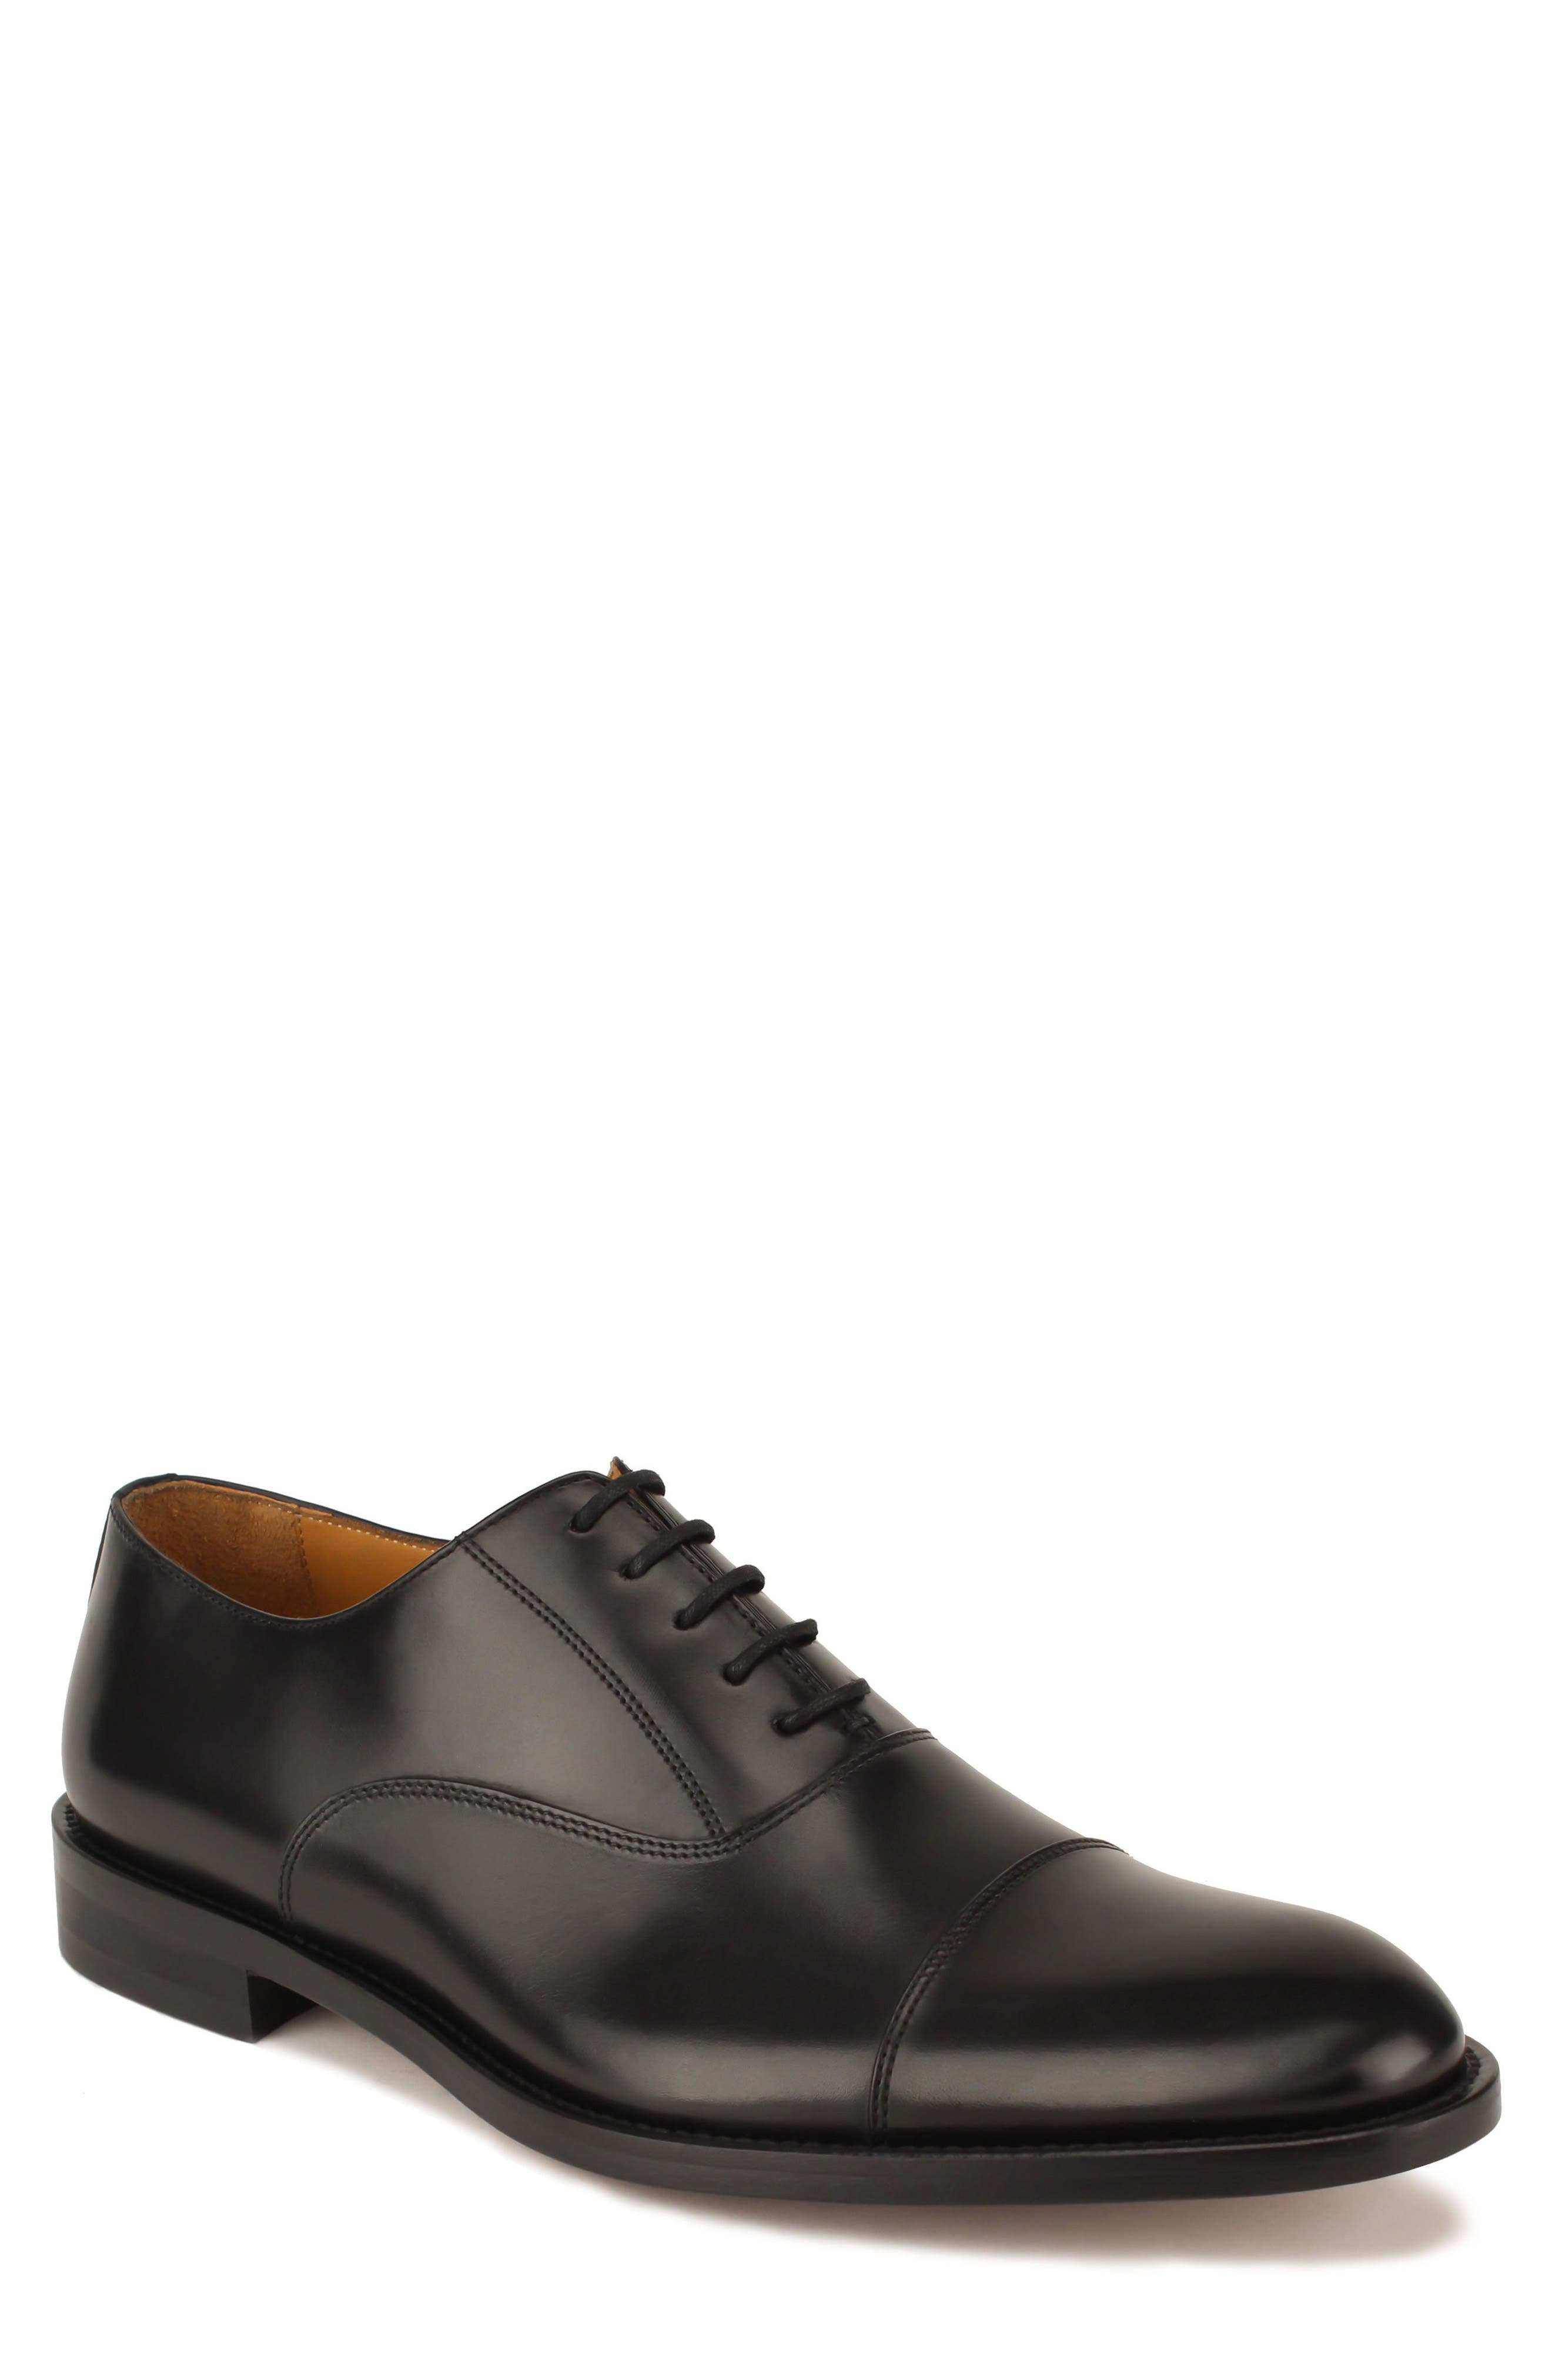 Nathan Cap Toe Oxford,                             Main thumbnail 1, color,                             Black Leather